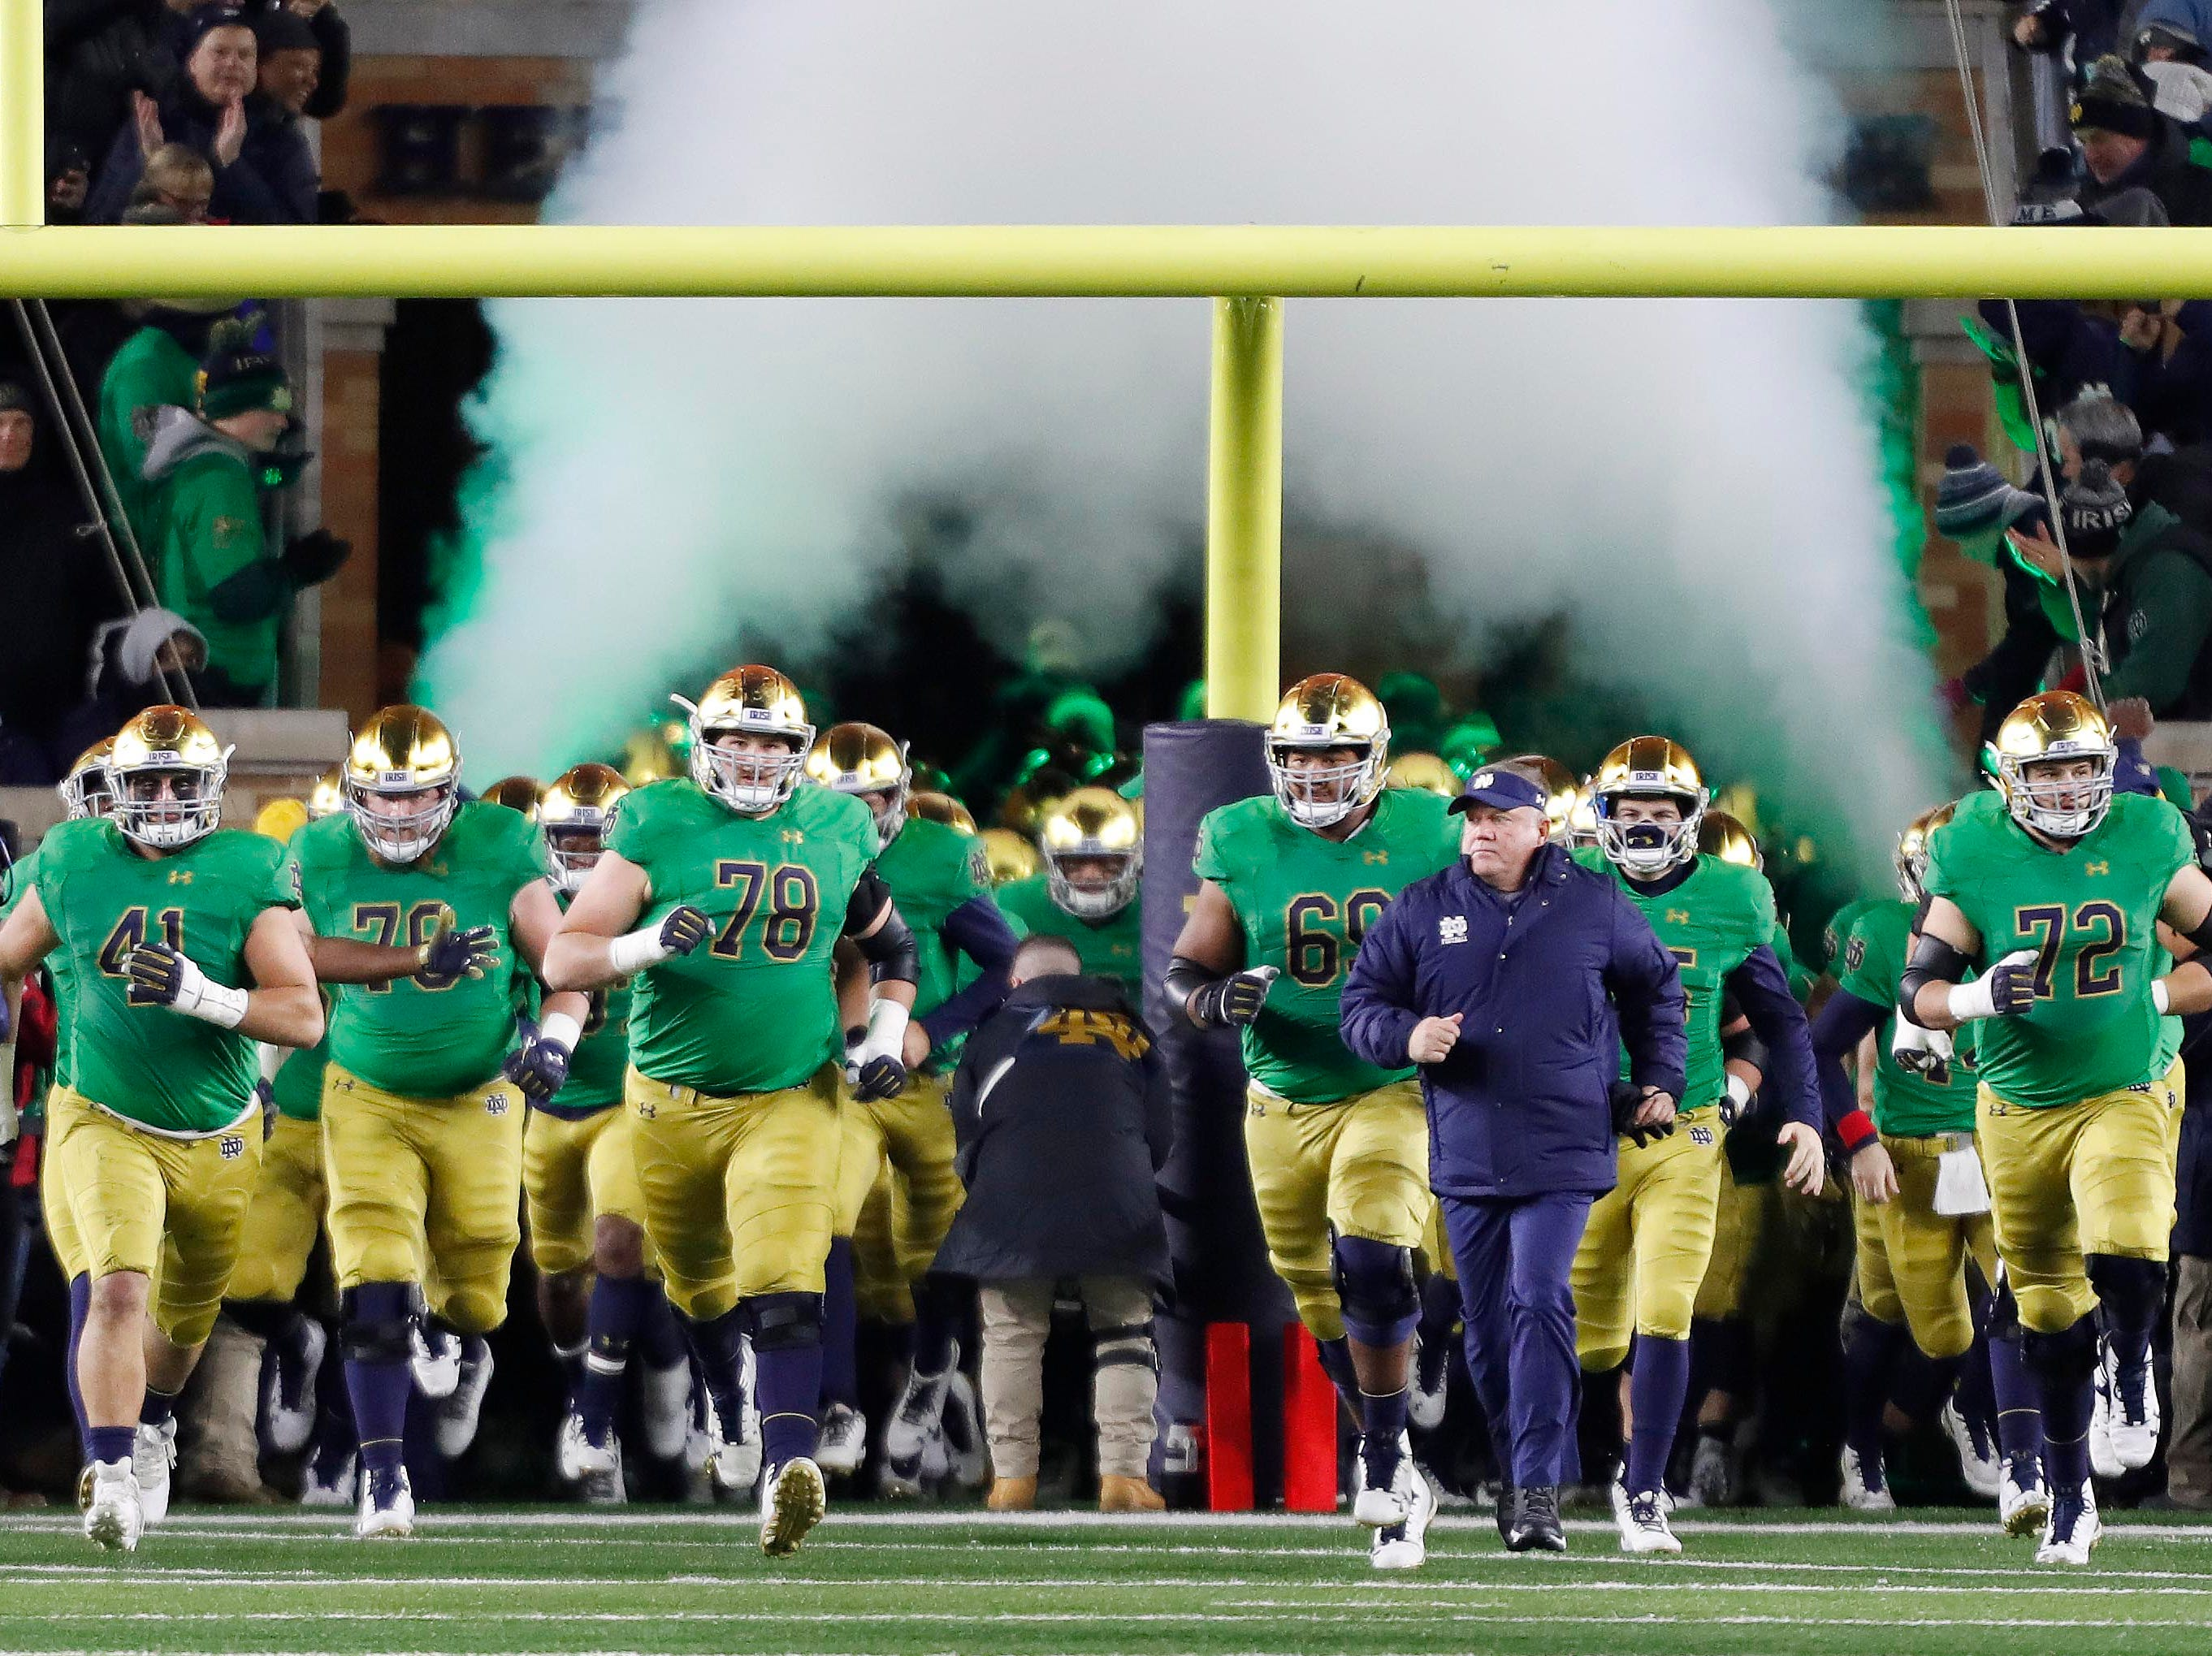 Nov 10, 2018; South Bend, IN, USA; Notre Dame Fighting Irish coach Brian Kelly leads the team onto the field before the game against the Florida State Seminoles at Notre Dame Stadium. Mandatory Credit: Brian Spurlock-USA TODAY Sports